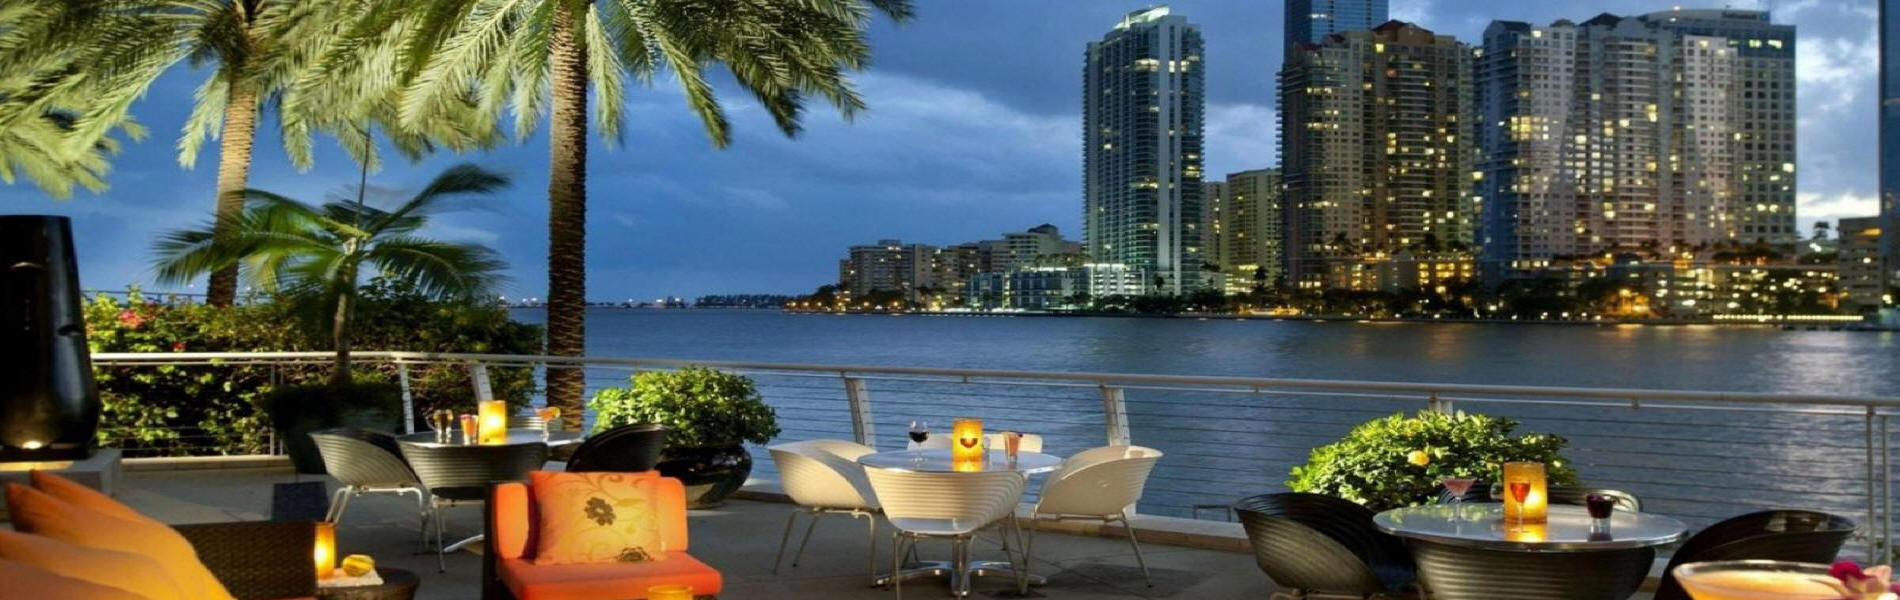 Land For Sale Waterfront West Palm Beach